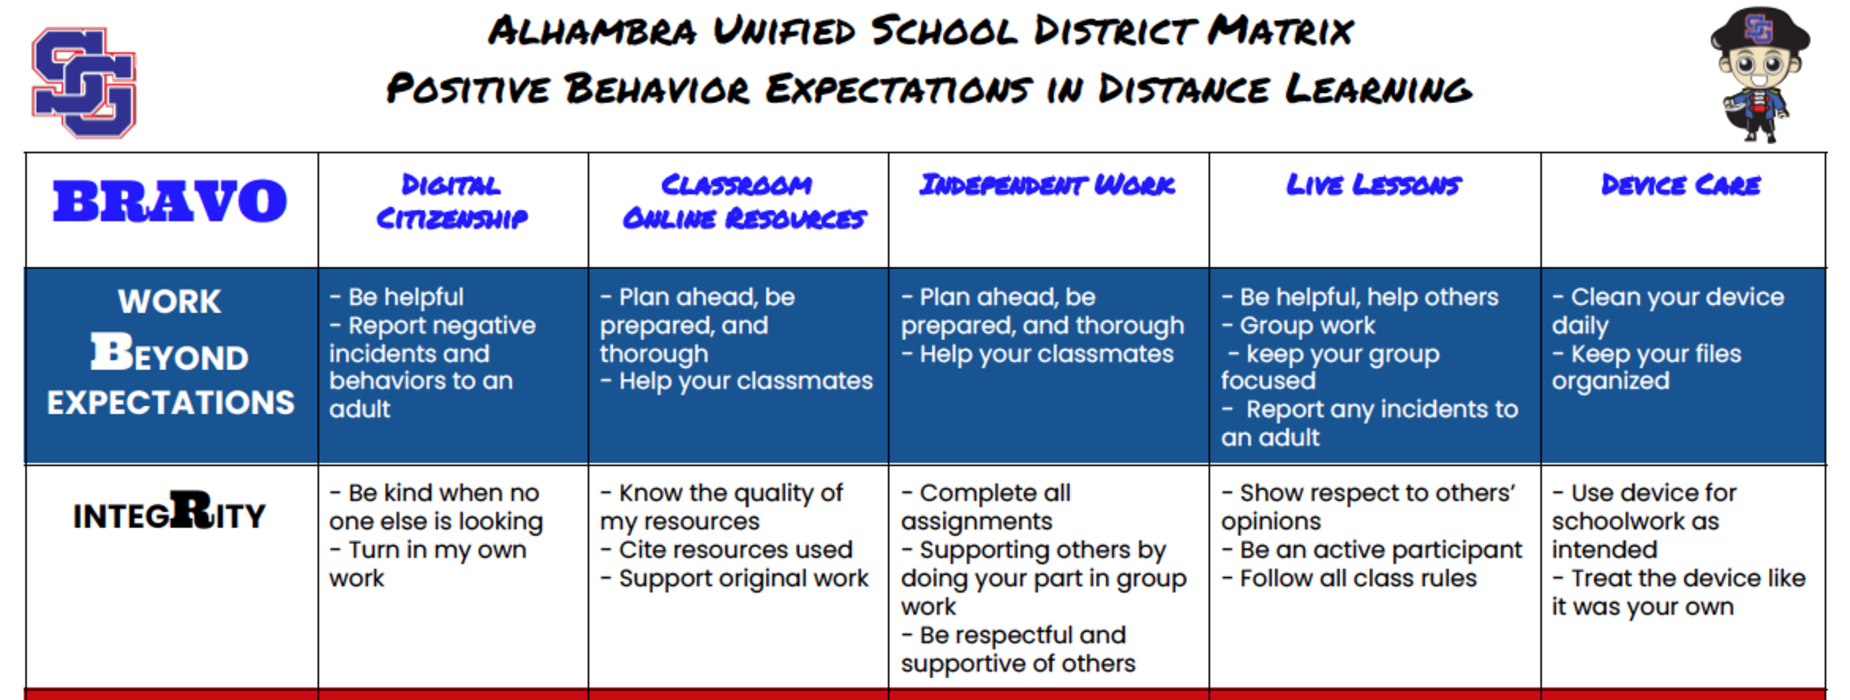 AUSD Matrix - Positive Behavior Expectations in Distance Learning